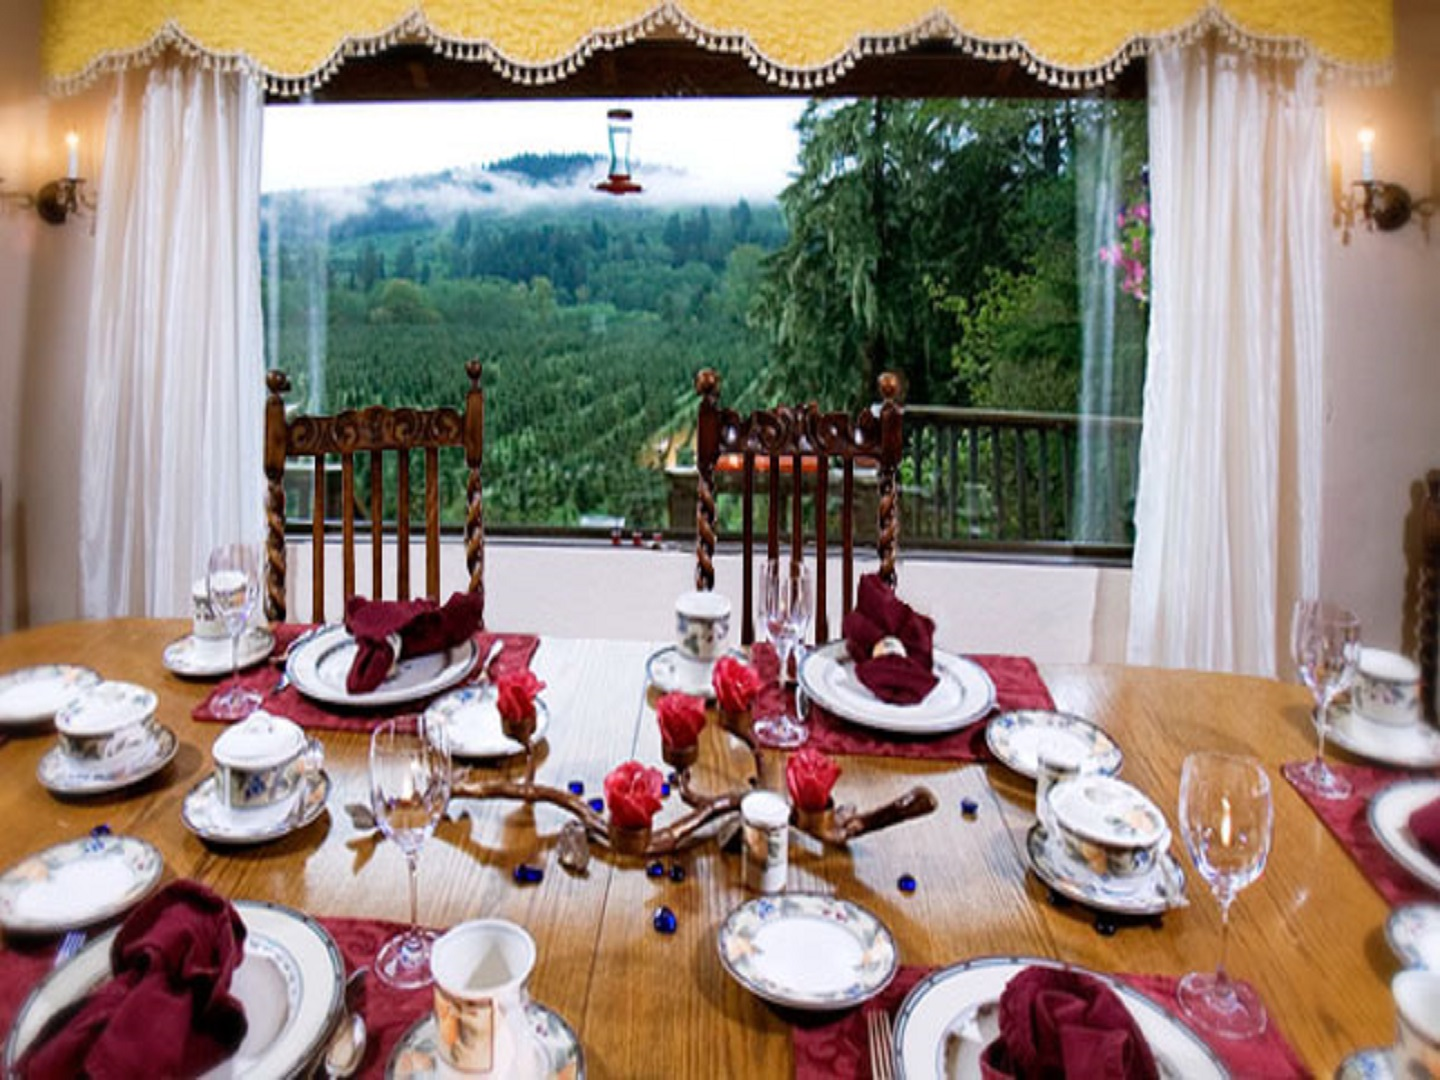 A dining room table in front of a curtain at Misty Valley Inn.